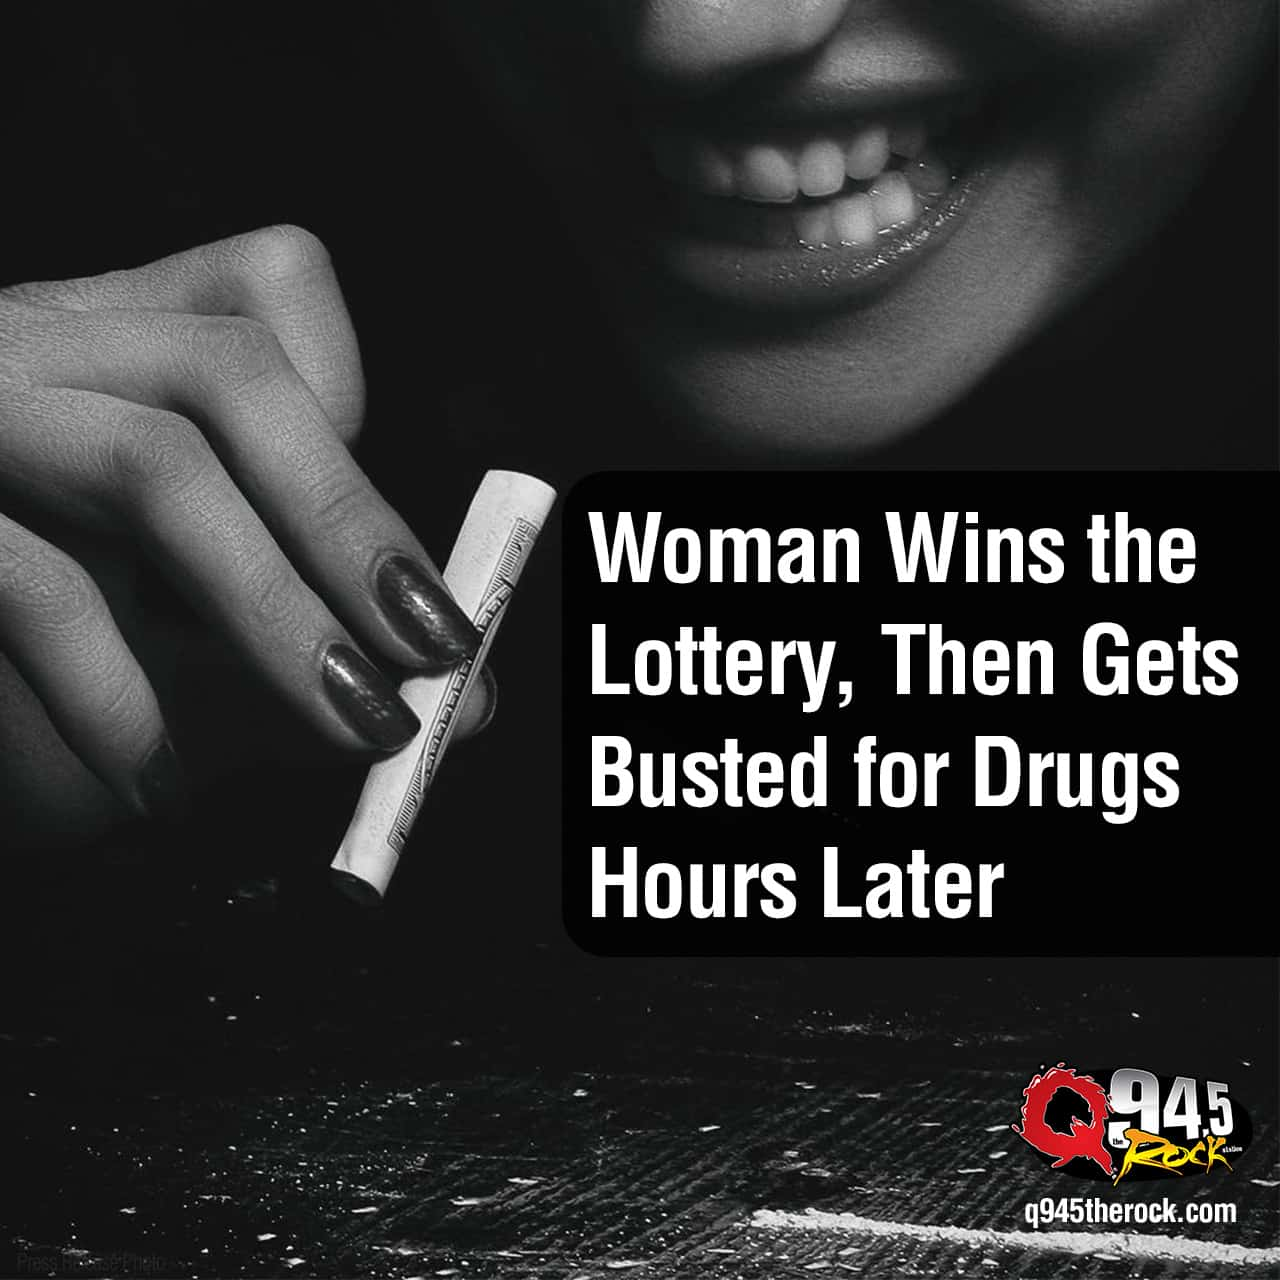 Stupid: A Woman Wins the Lottery, Then Gets Busted for Drugs Hours Later